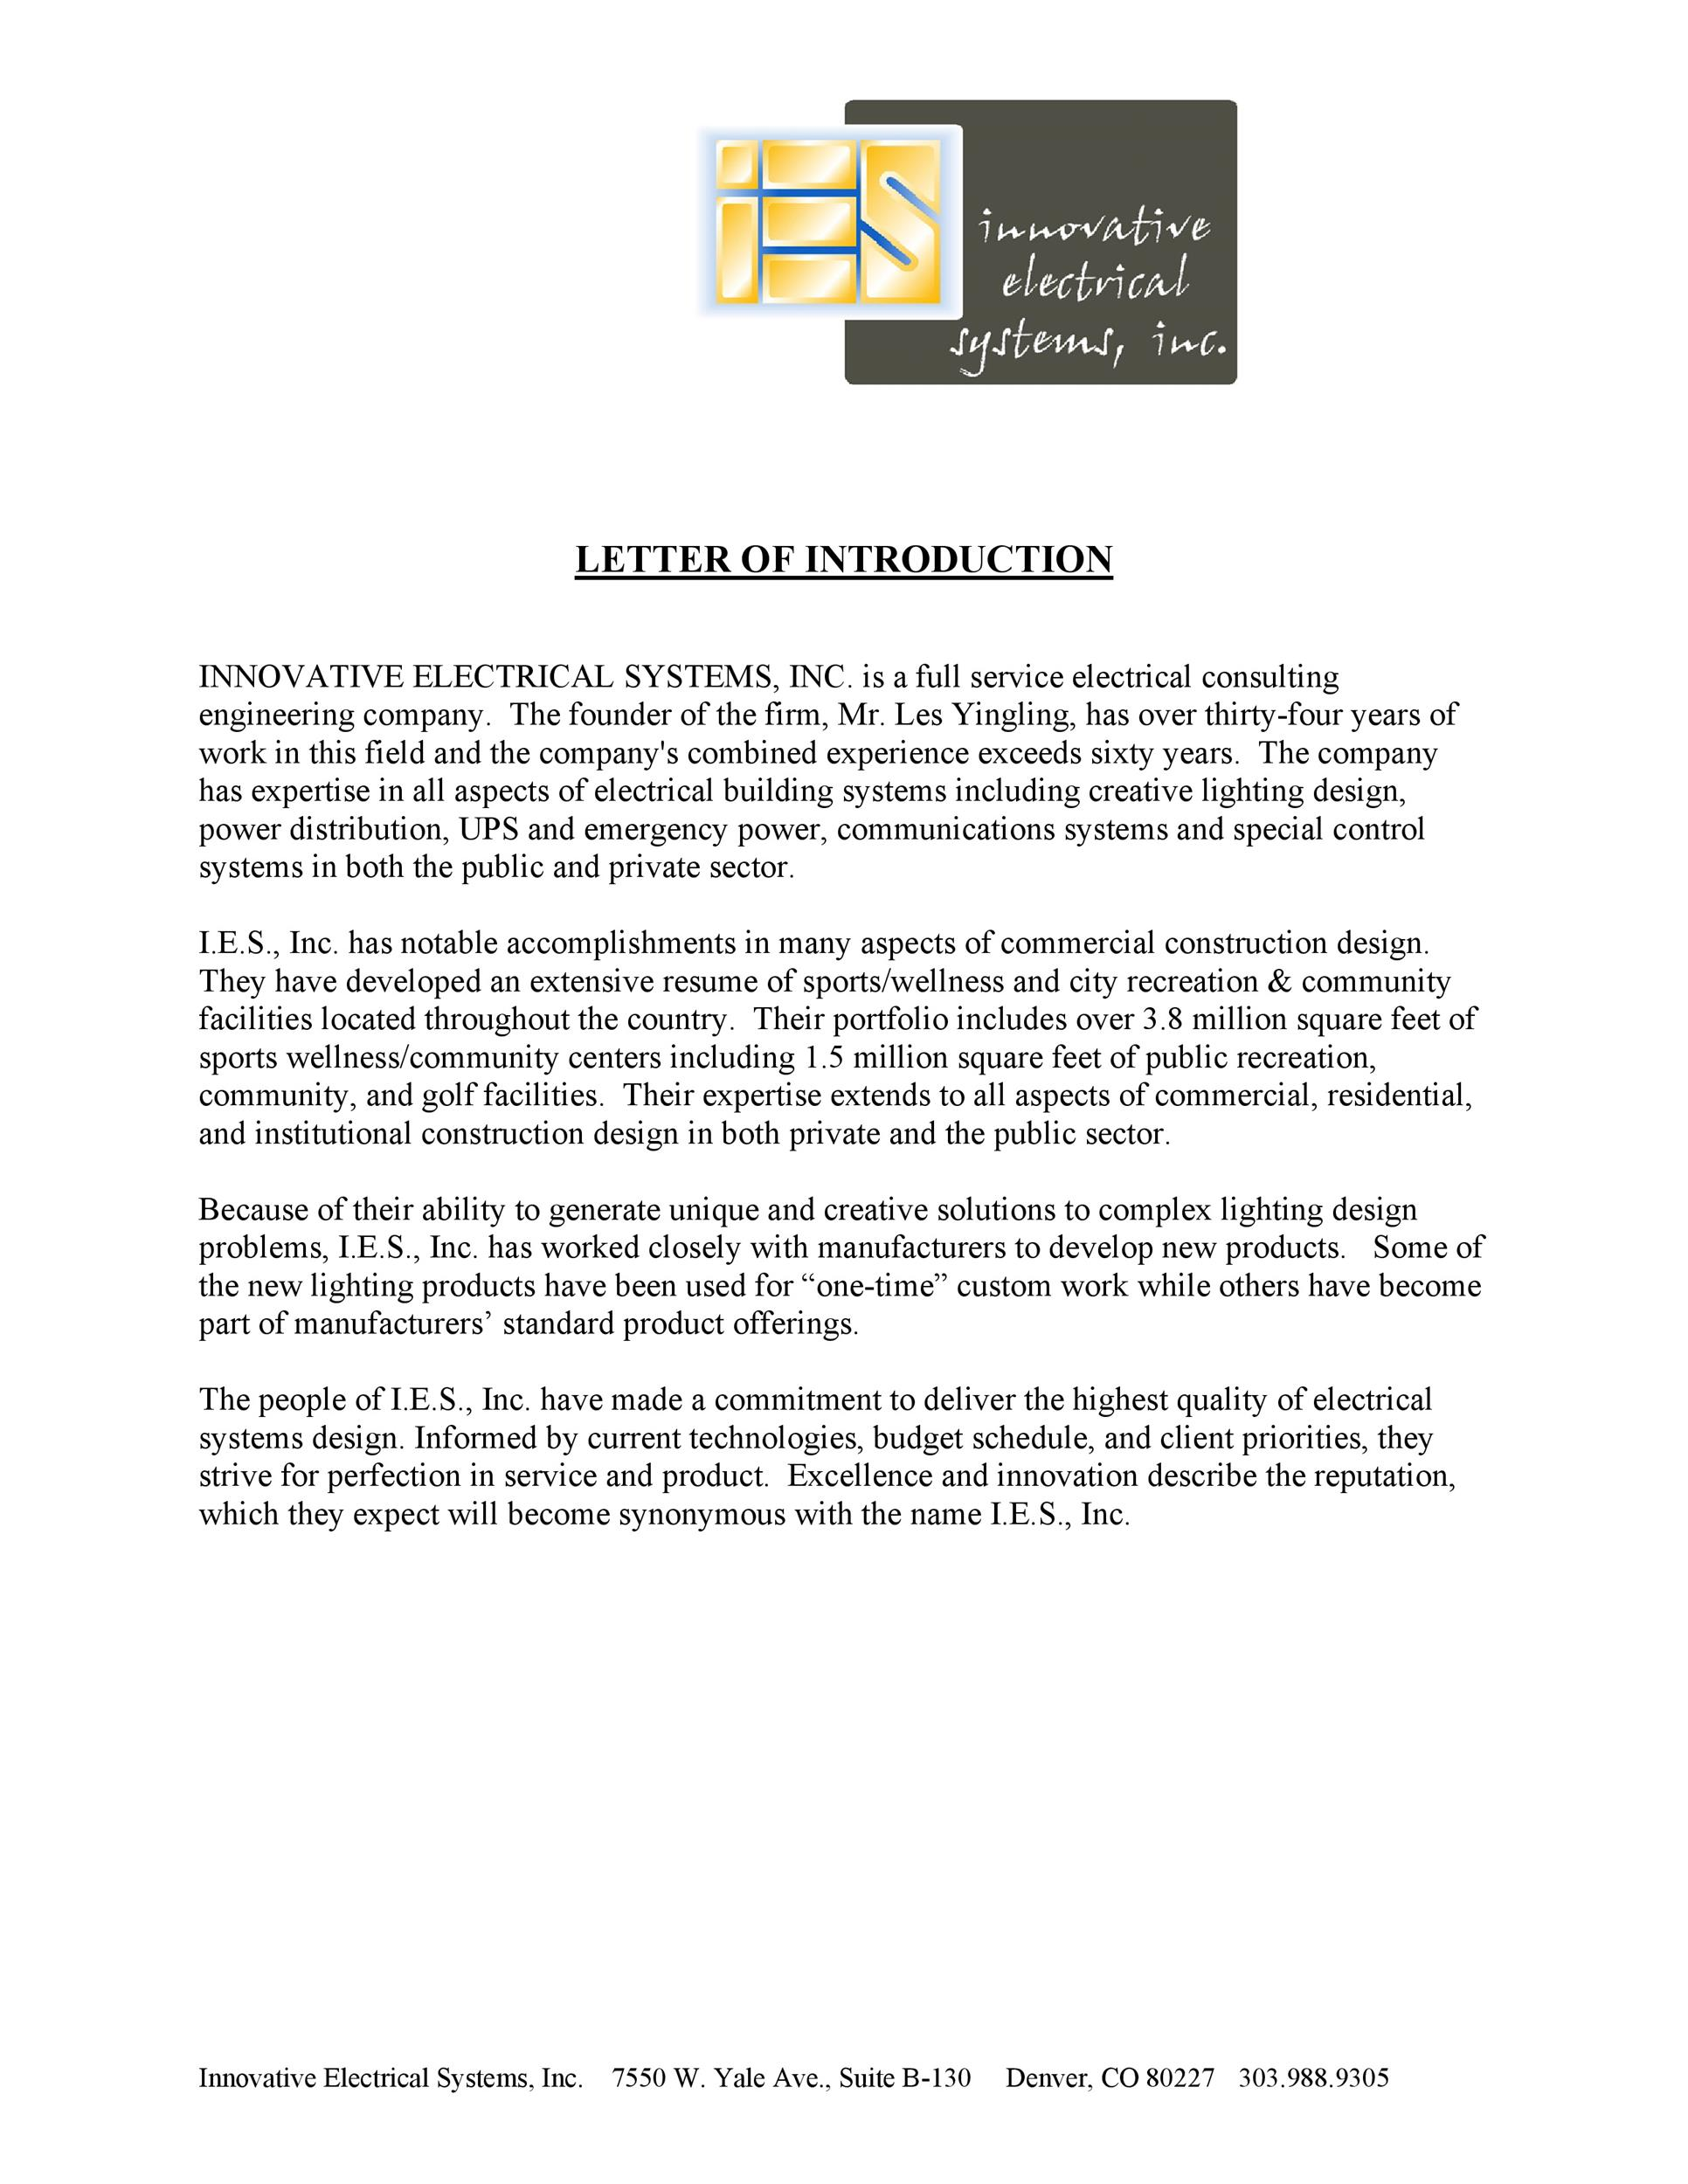 Free business introduction letter 09